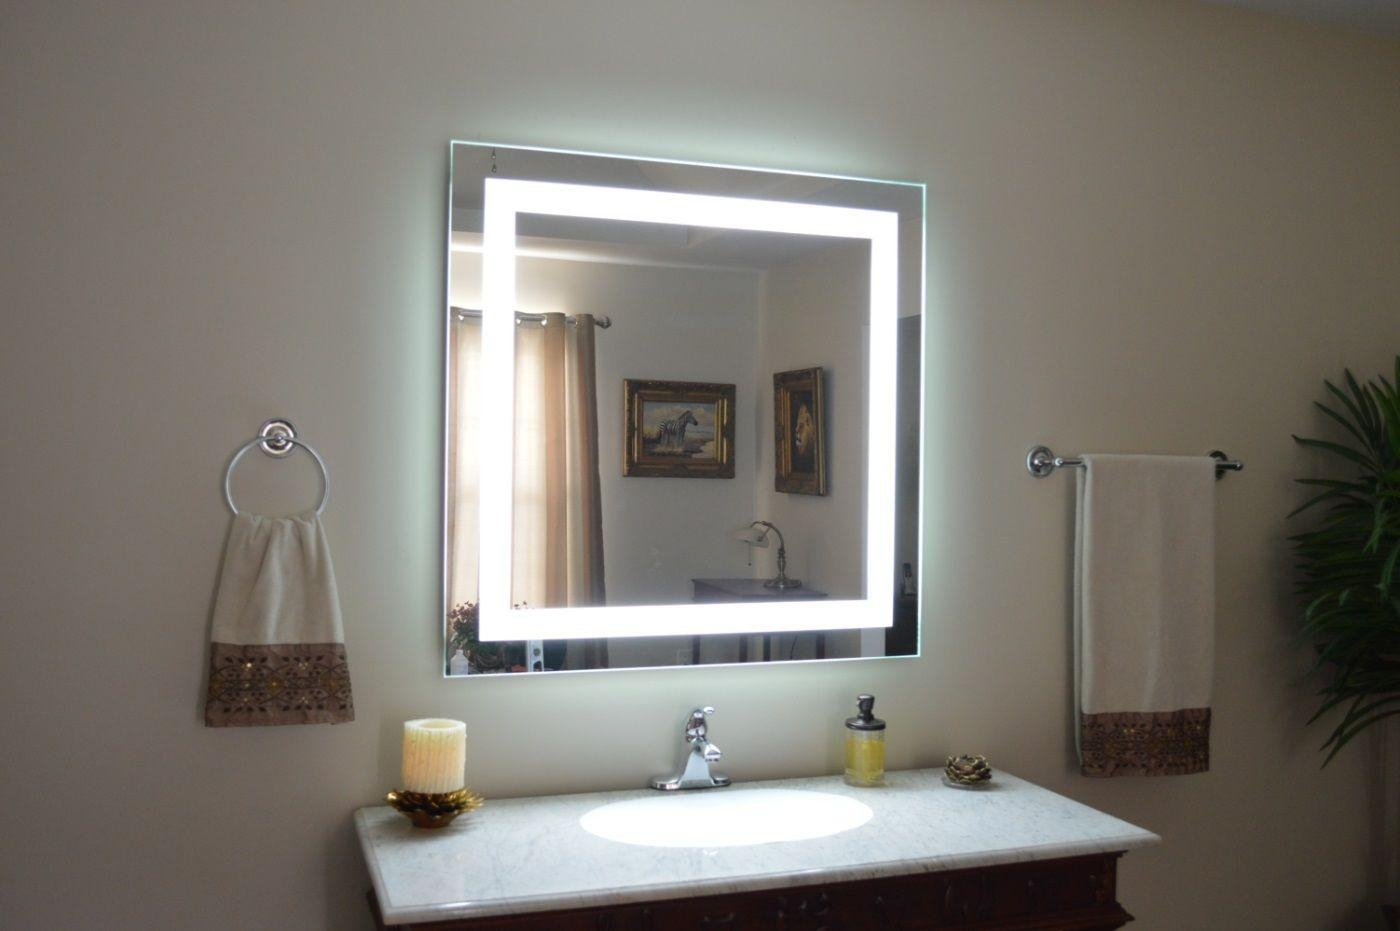 Fabulous Lighted Wall Mirror In Unlimited Style — Doherty House In Lighted Vanity Wall Mirrors (Image 6 of 20)